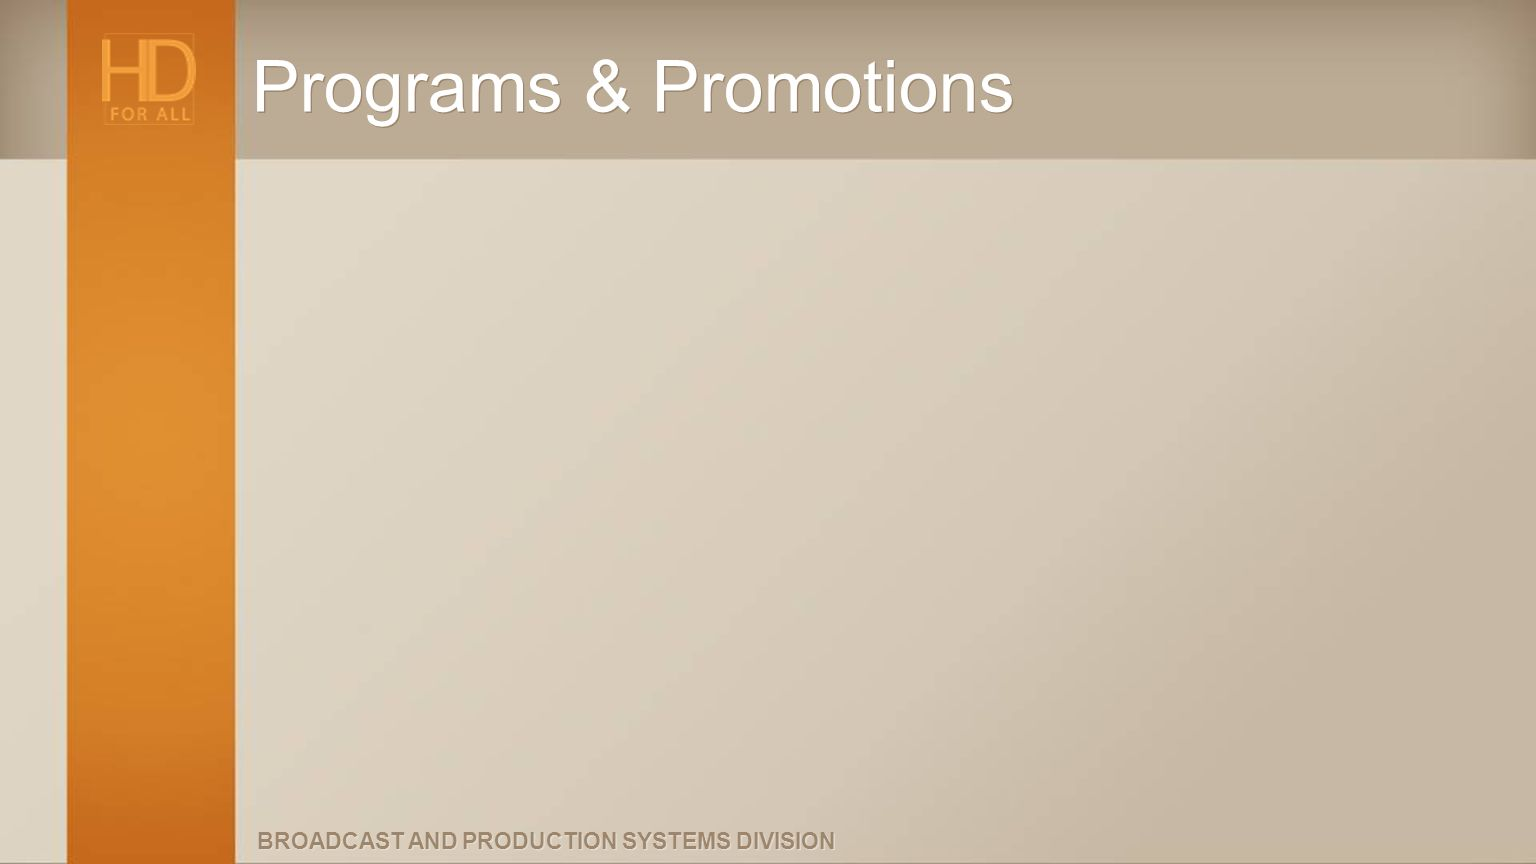 Programs & Promotions